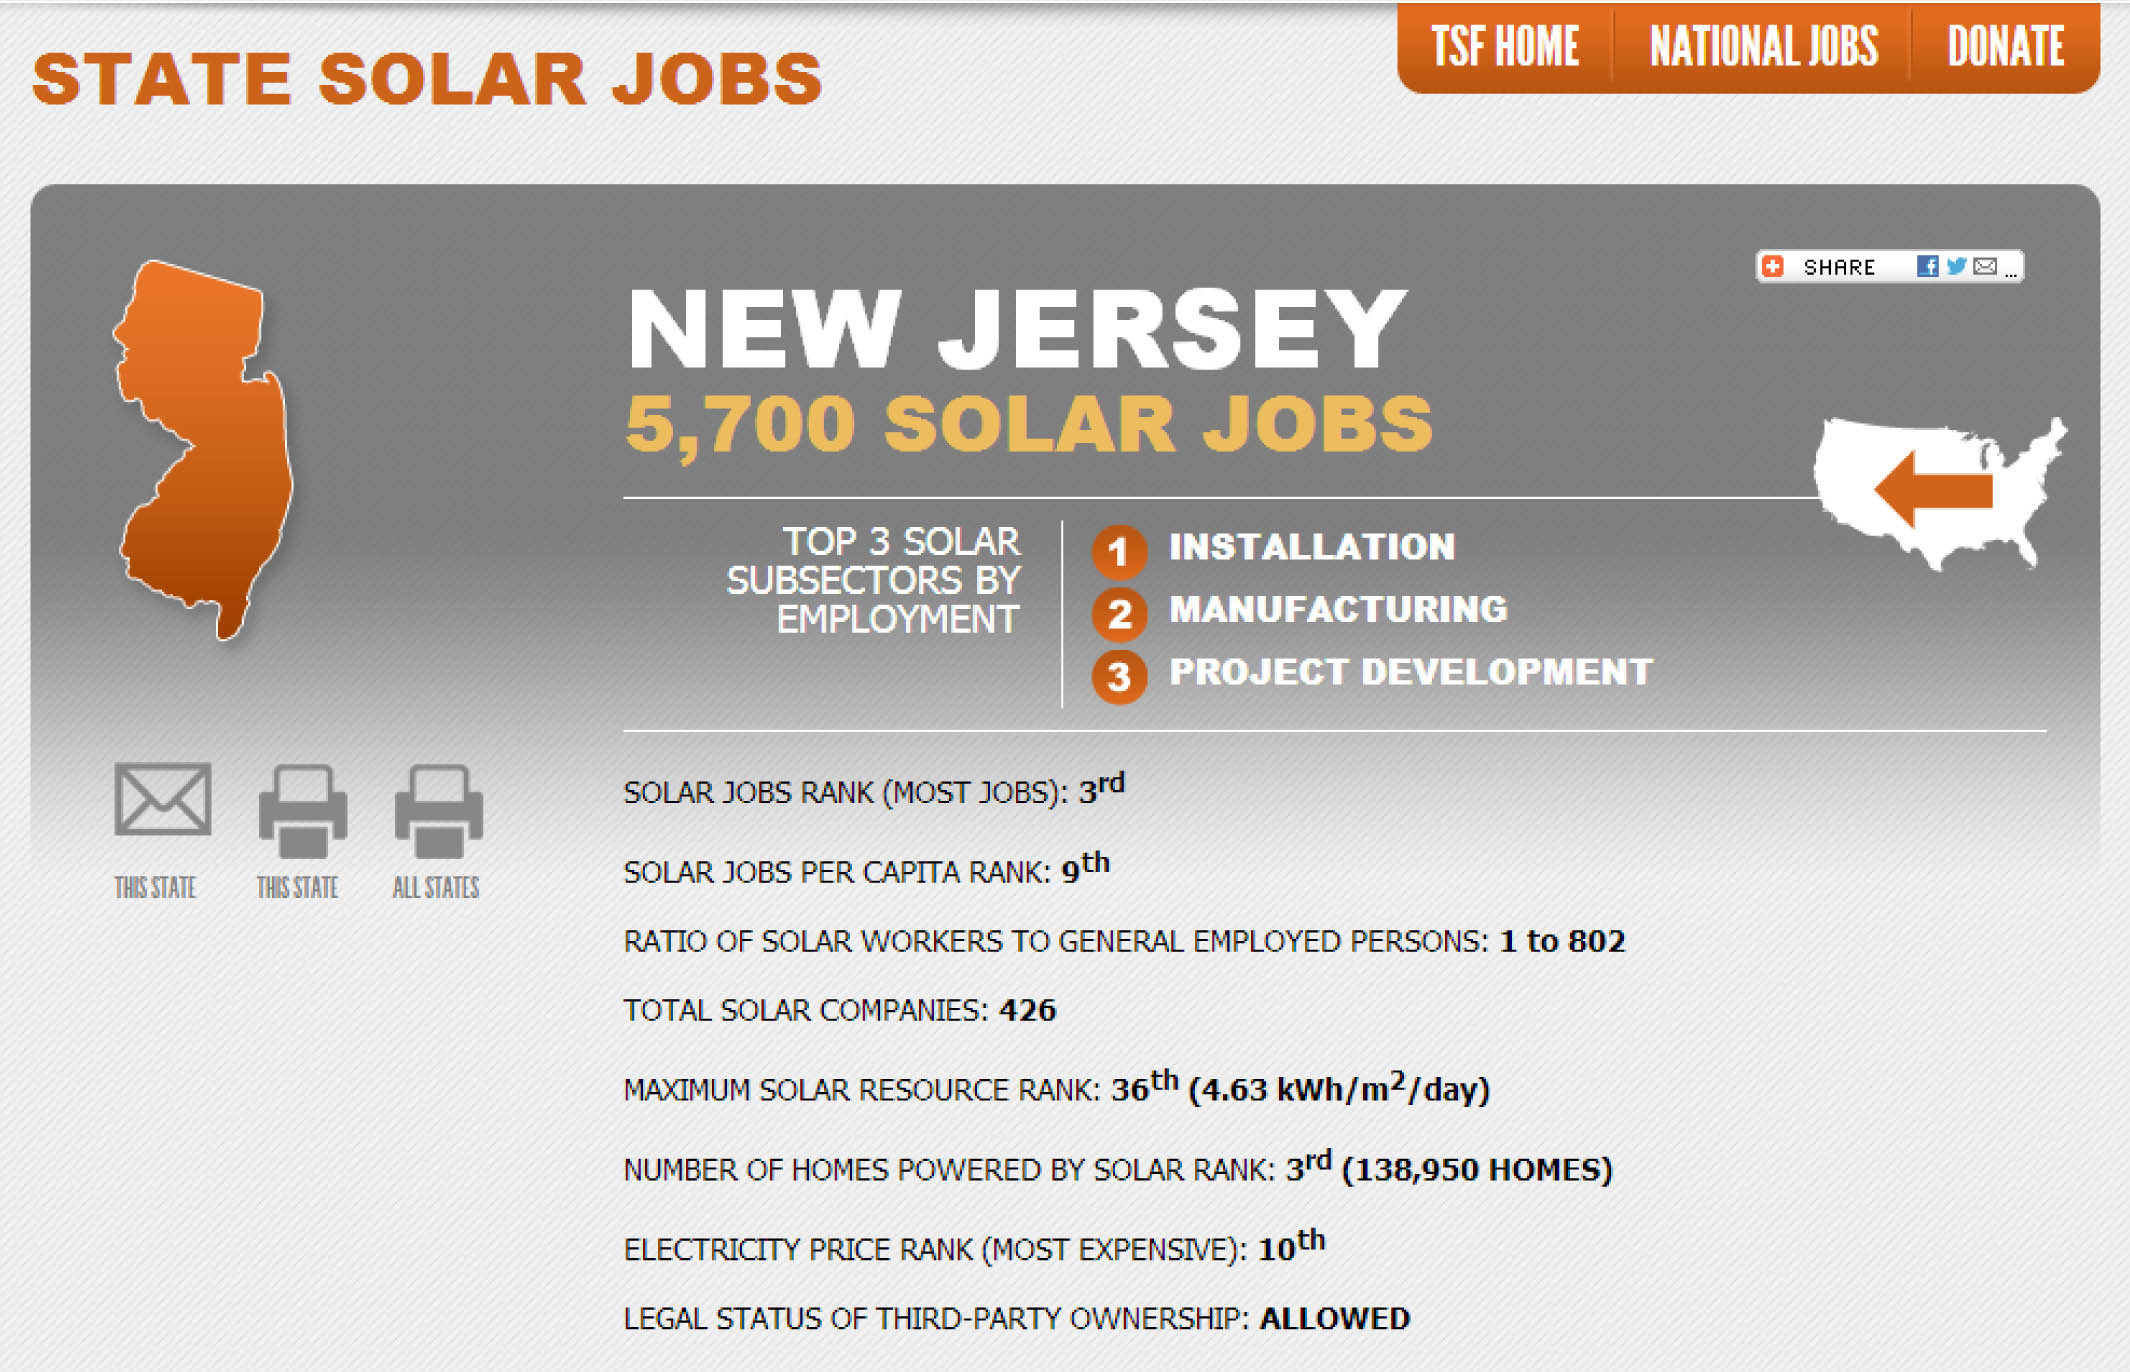 nj-solar-policies-and-data